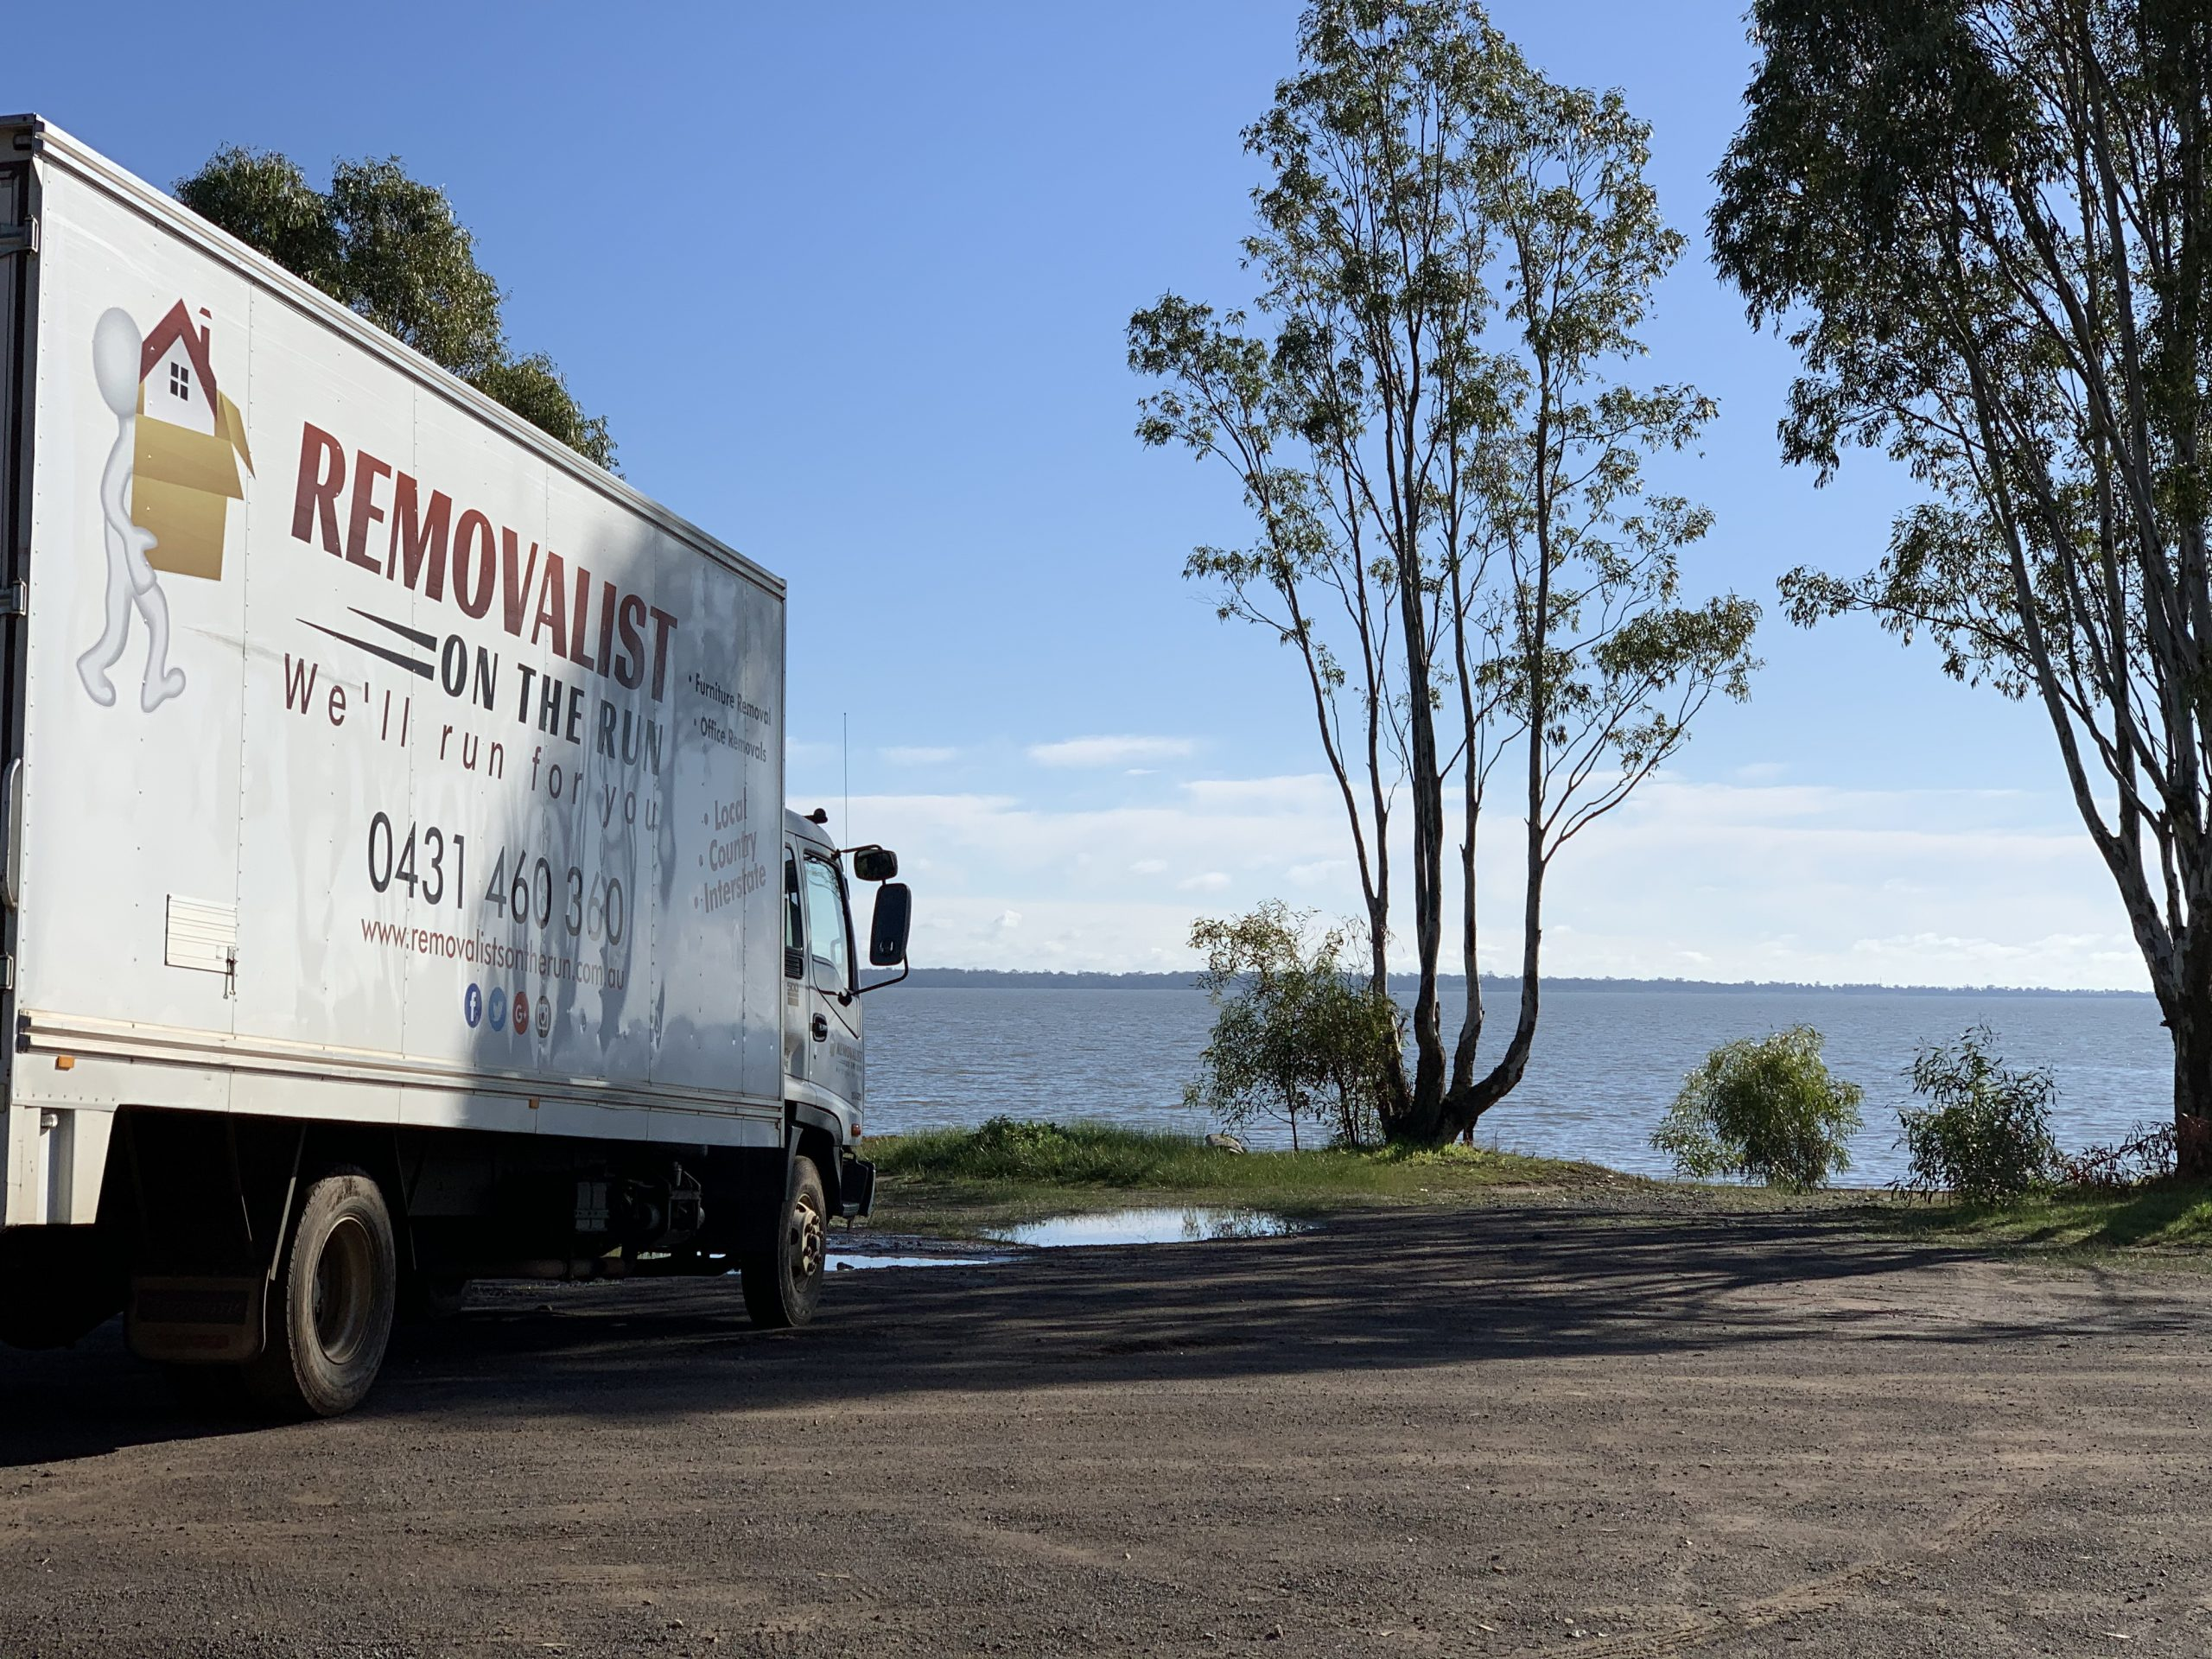 Need to Move in An Emergency During COVID-19? Removalists On the Run Can Help